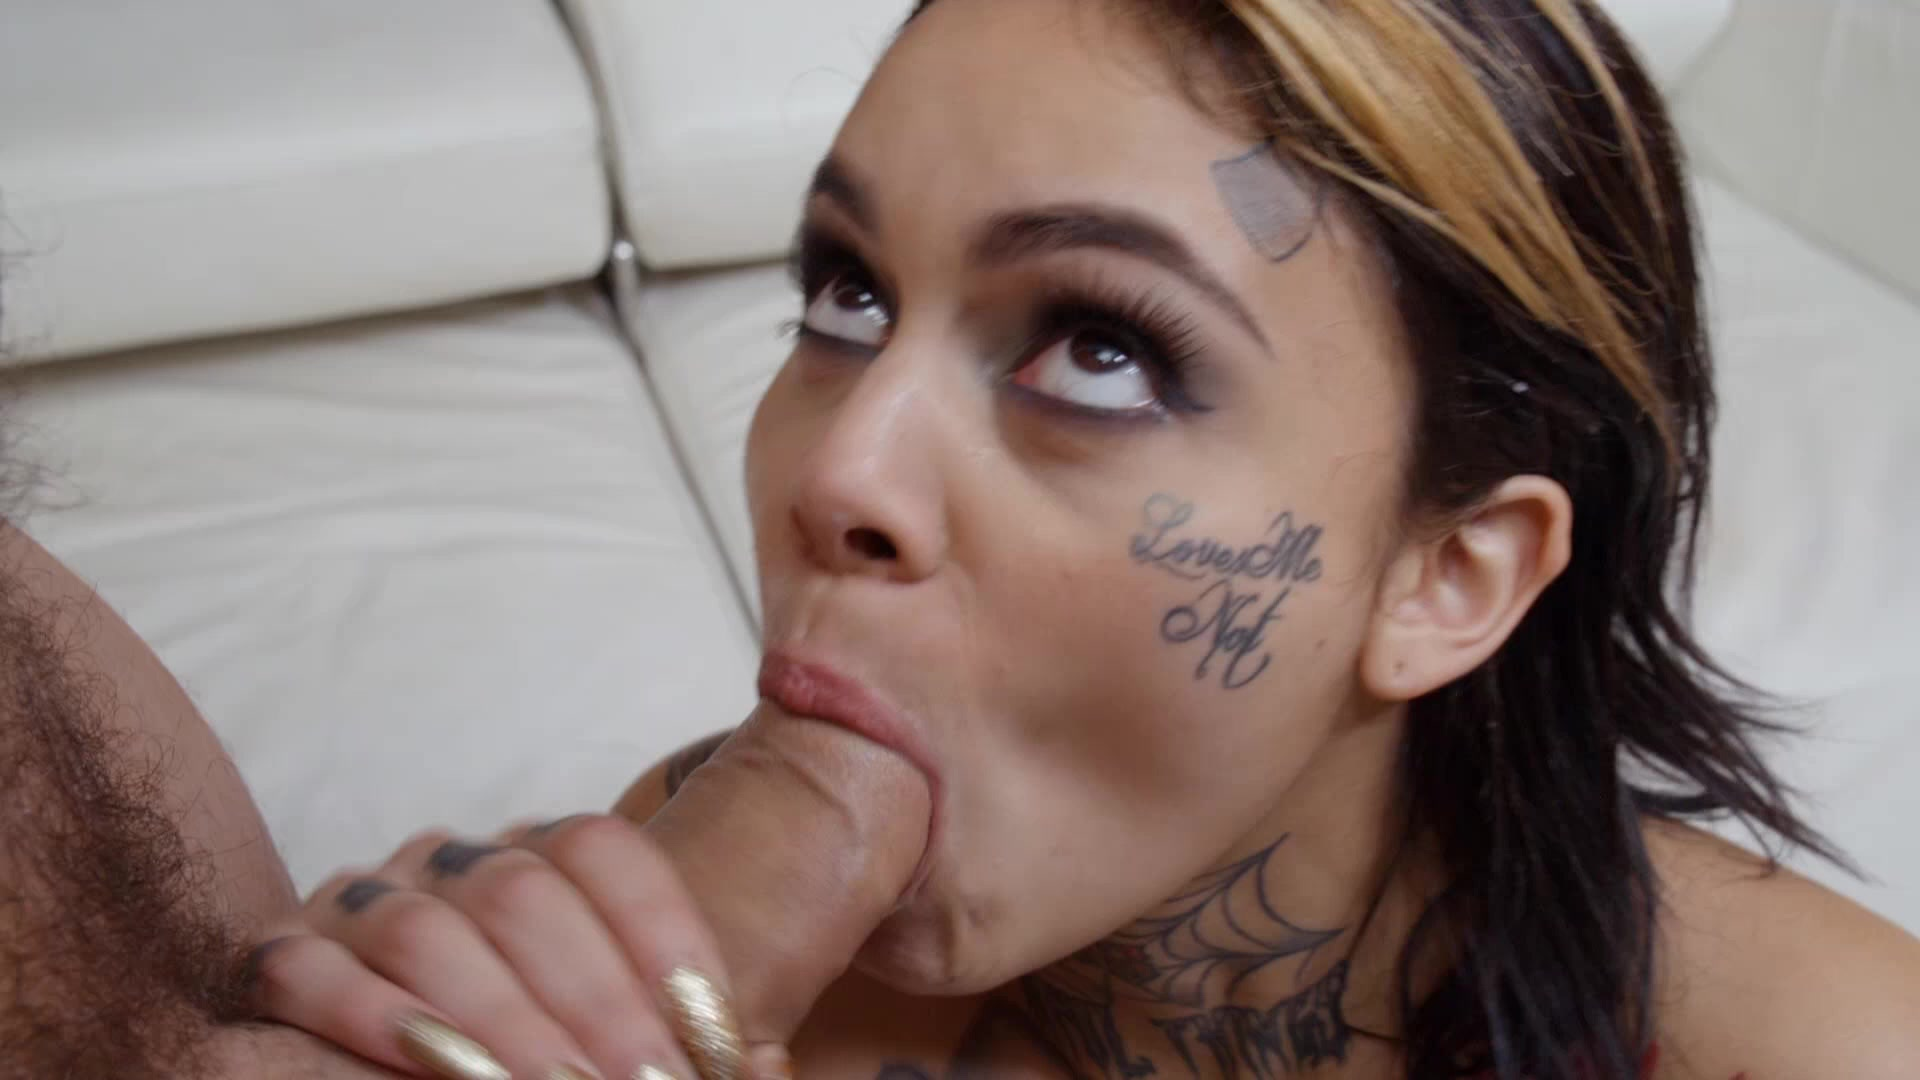 Axel Braun's INKED 6